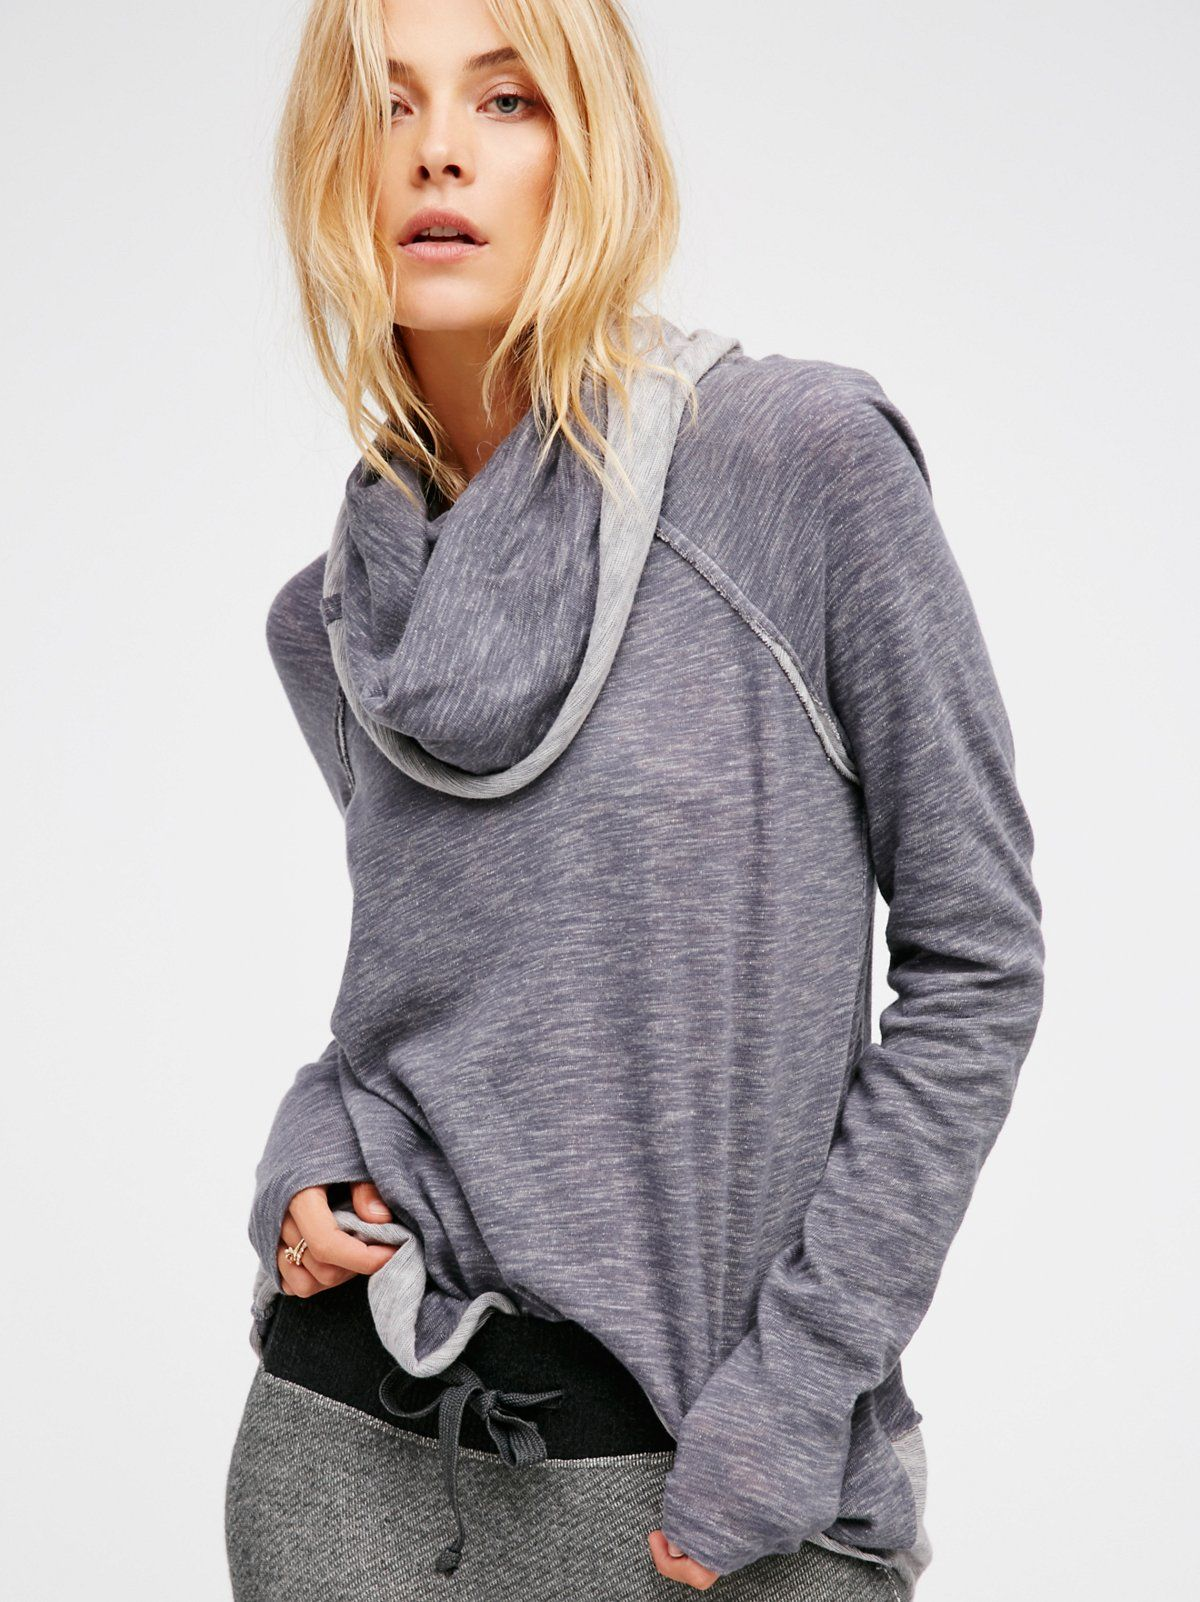 Cocoon Pullover | Knitted slouchy pullover with long raglan sleeves and an oversized turtleneck. Raw hems throughout.